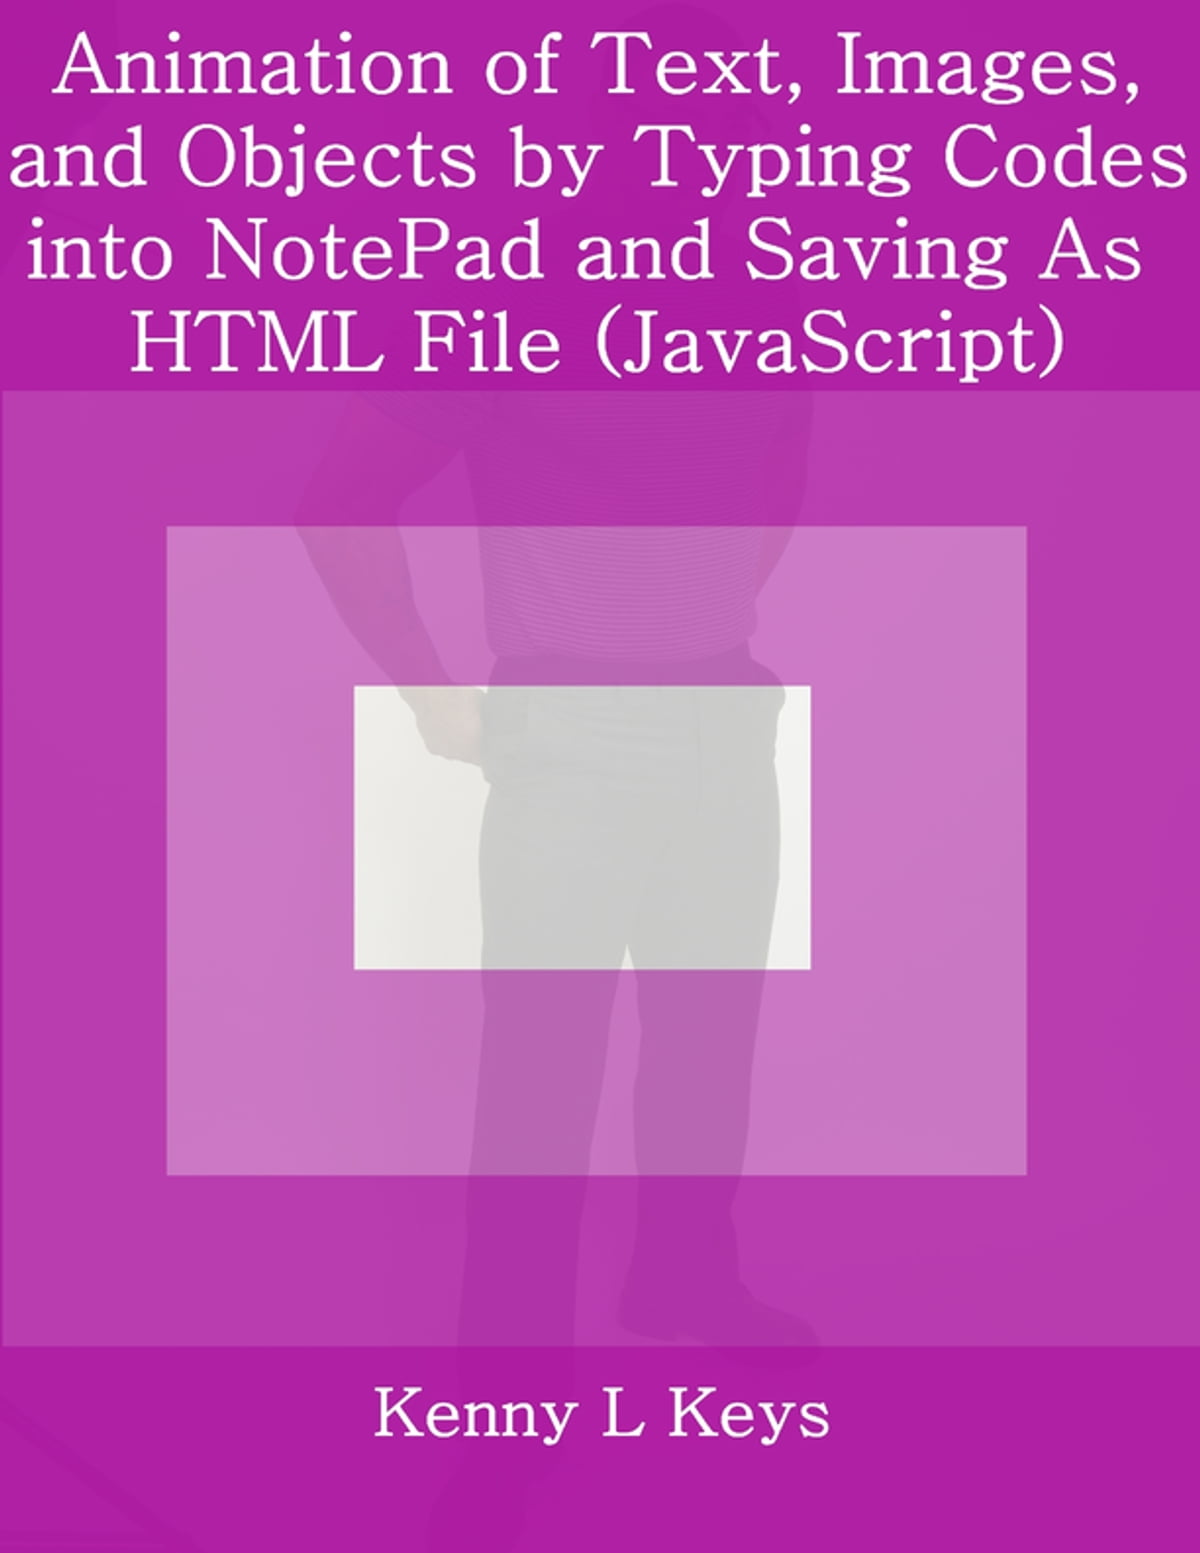 Animation of Text, Images, and Objects by Typing Codes into NotePad and  Saving As HTML File (JavaScript) ebook by Kenny L Keys - Rakuten Kobo